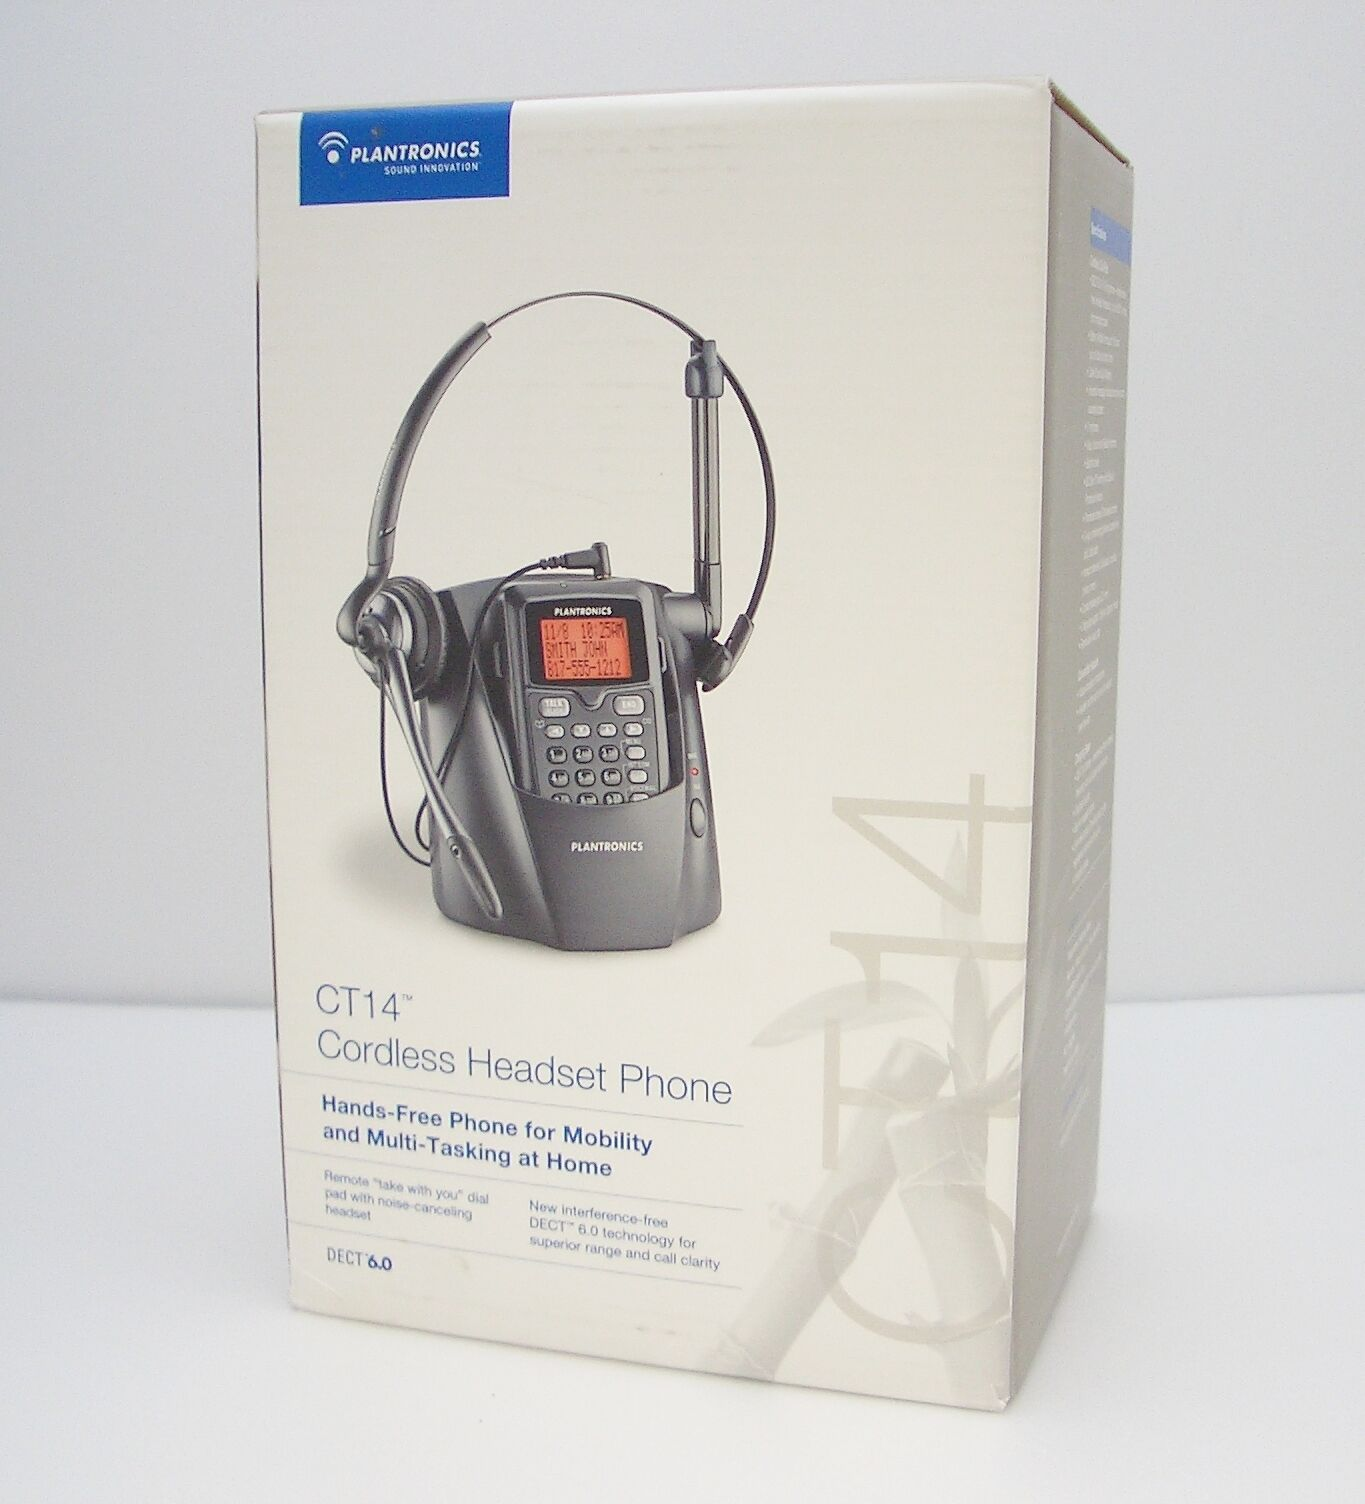 Details about Plantronics CT14 Cordless 1.9GHz Headset Telephone with Convertible 2 in 1 Style